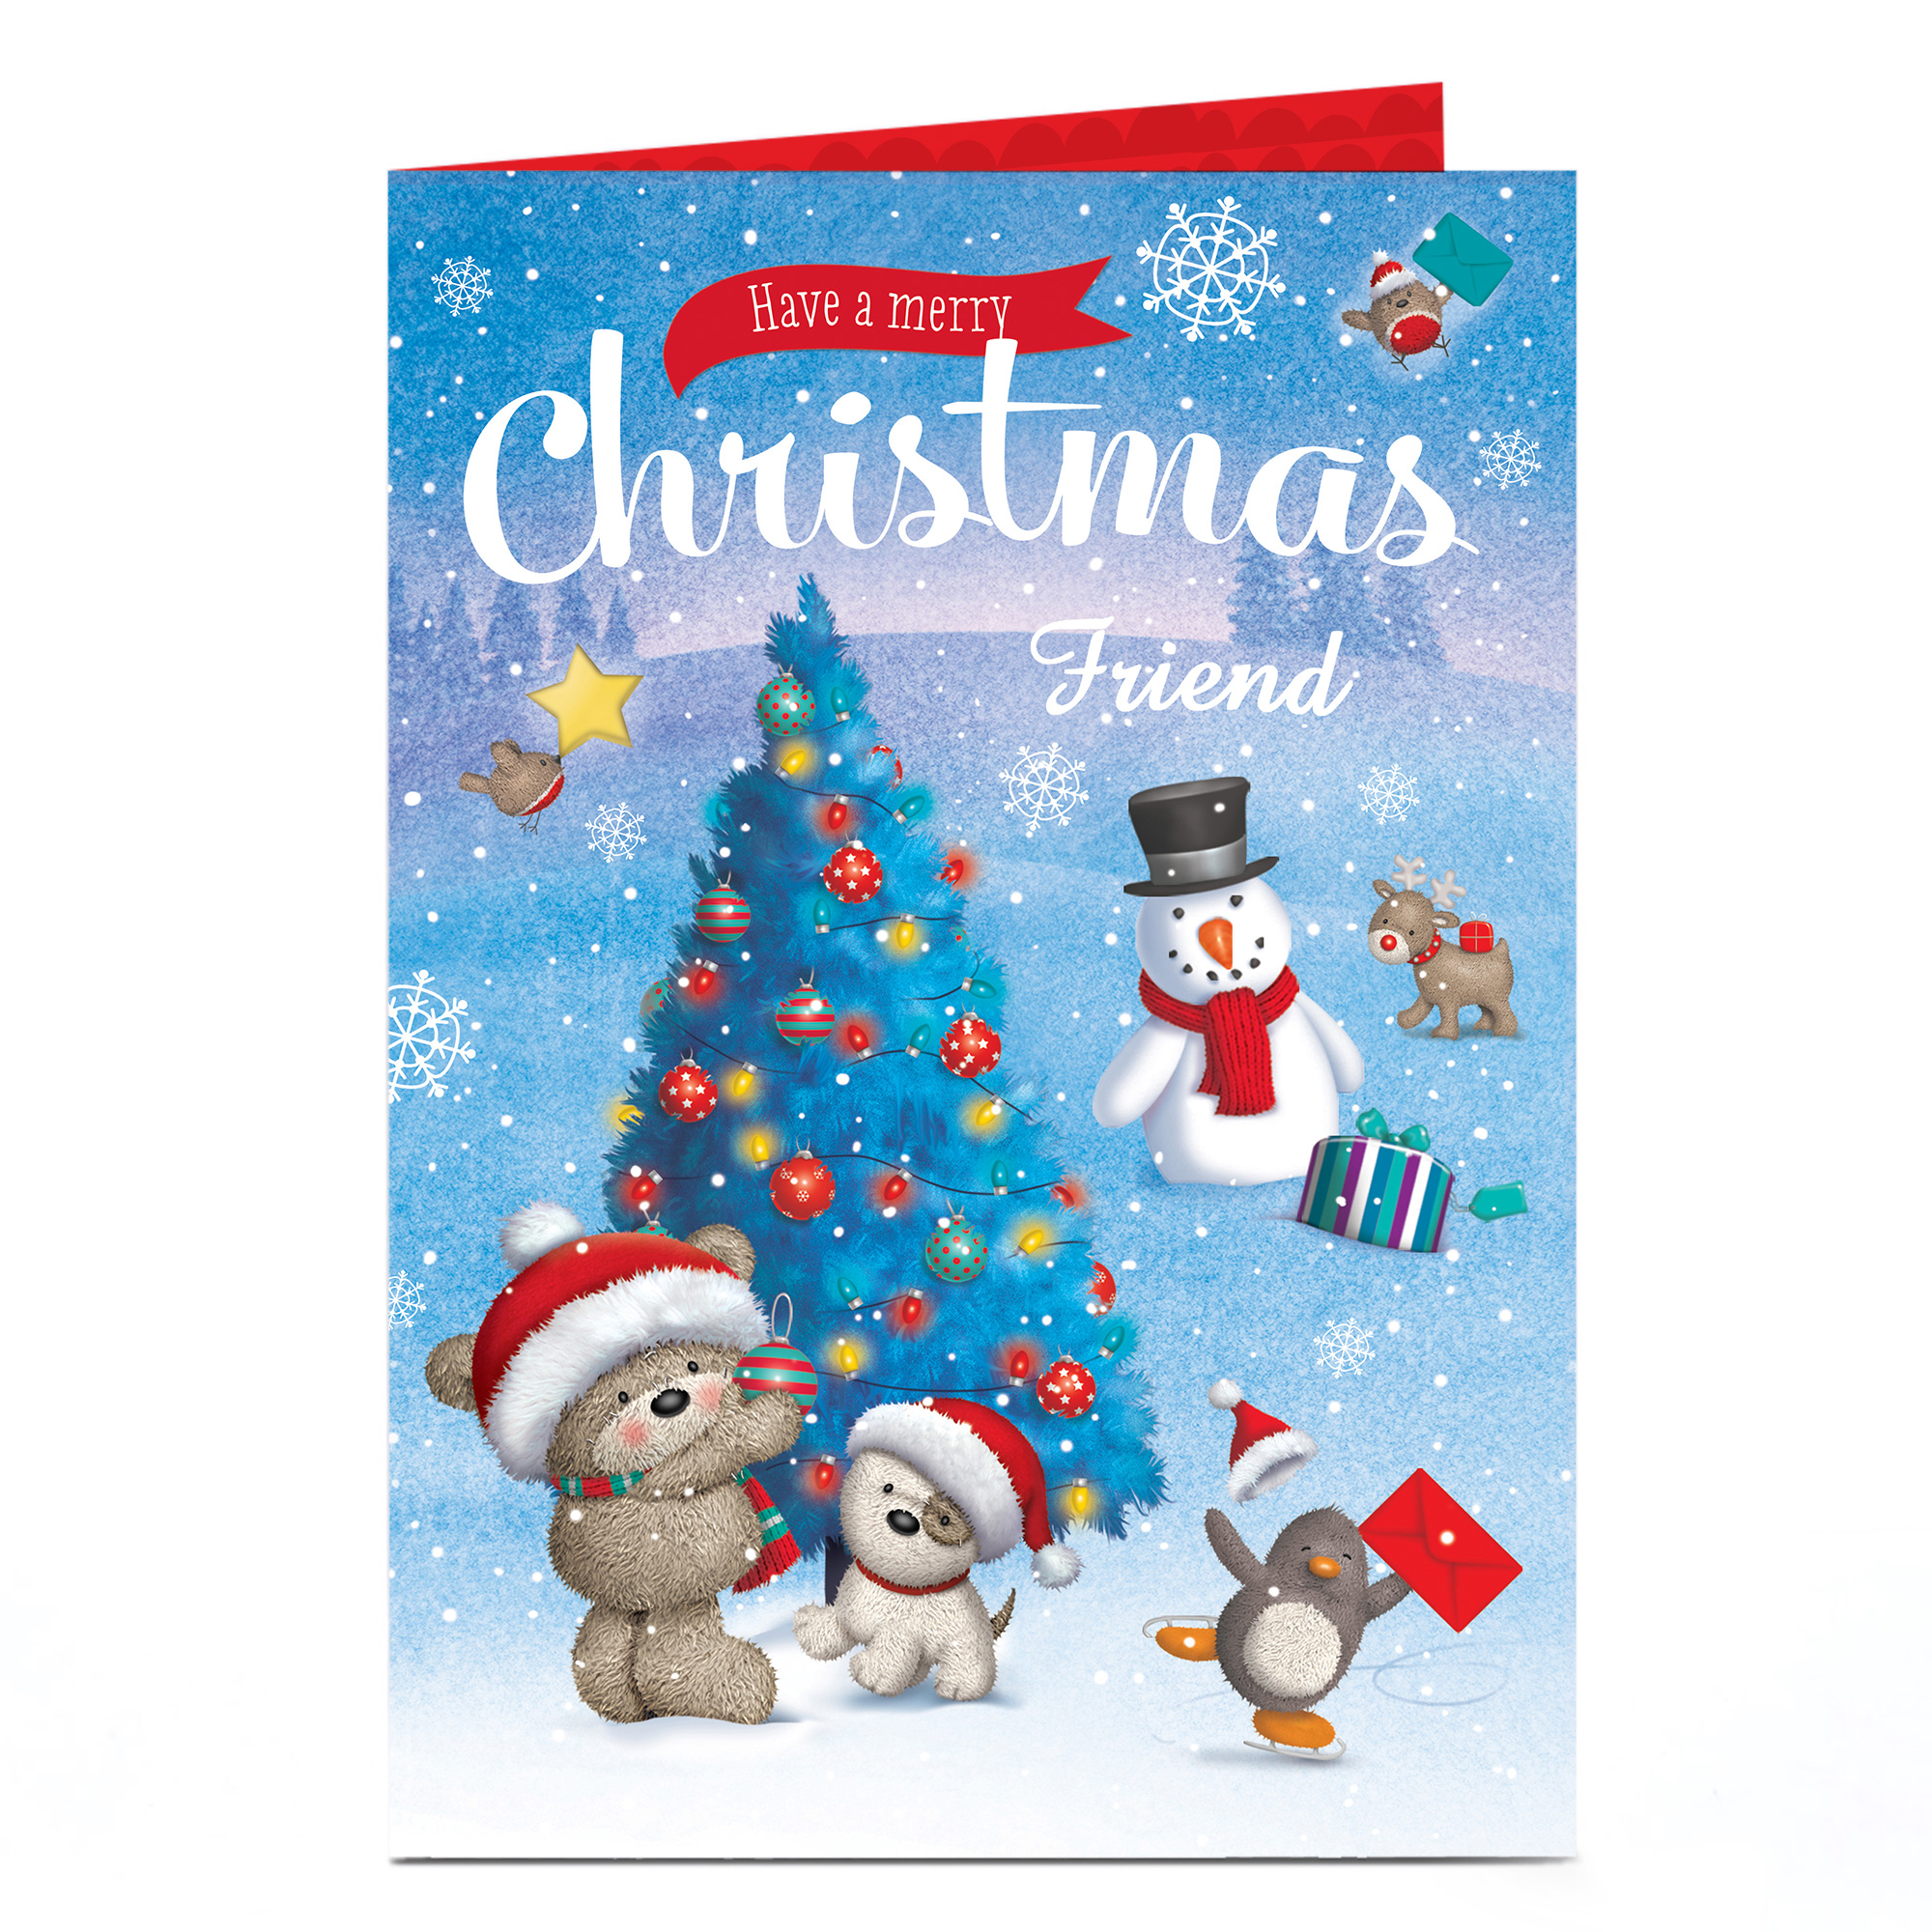 Personalised Hugs Christmas Card - Decorating Tree - Friend